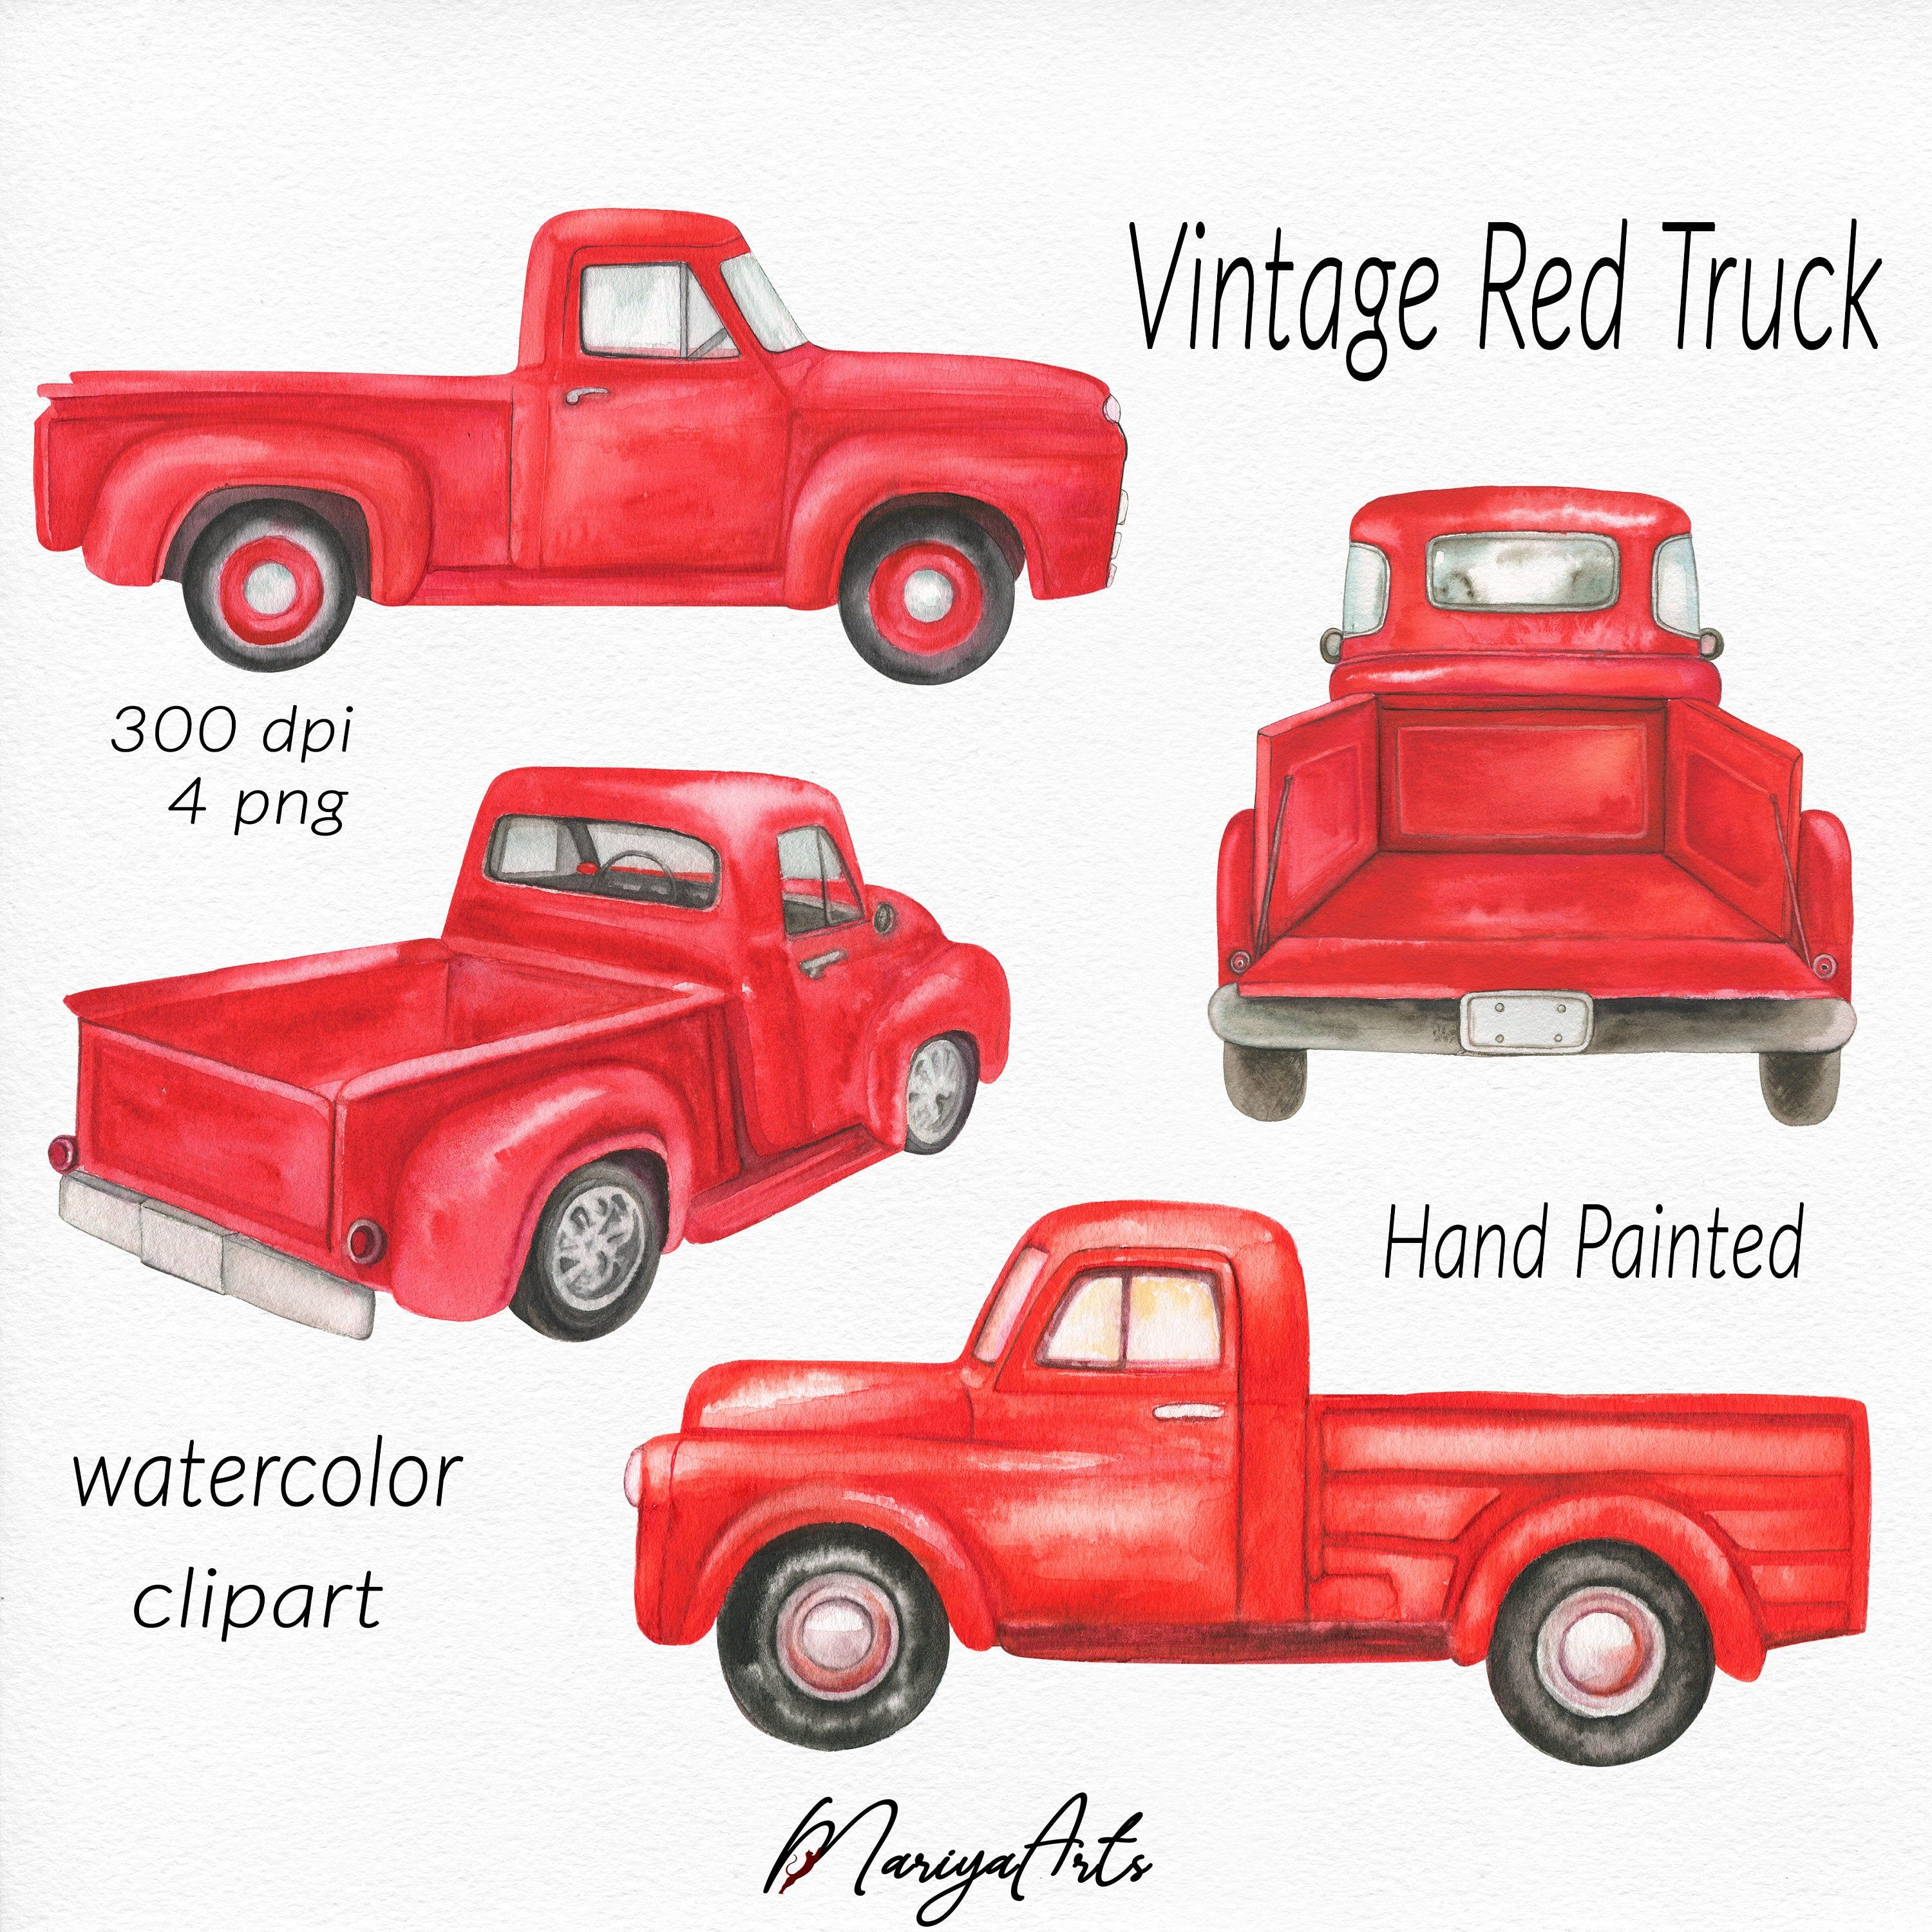 Red Truck Clipart Vintage Retro Watercolor Red Trucks Hand Painted Clip Art Farm Classic Pick Up Truck Farmer S Picku Red Truck Watercolor Red Truck Crafts